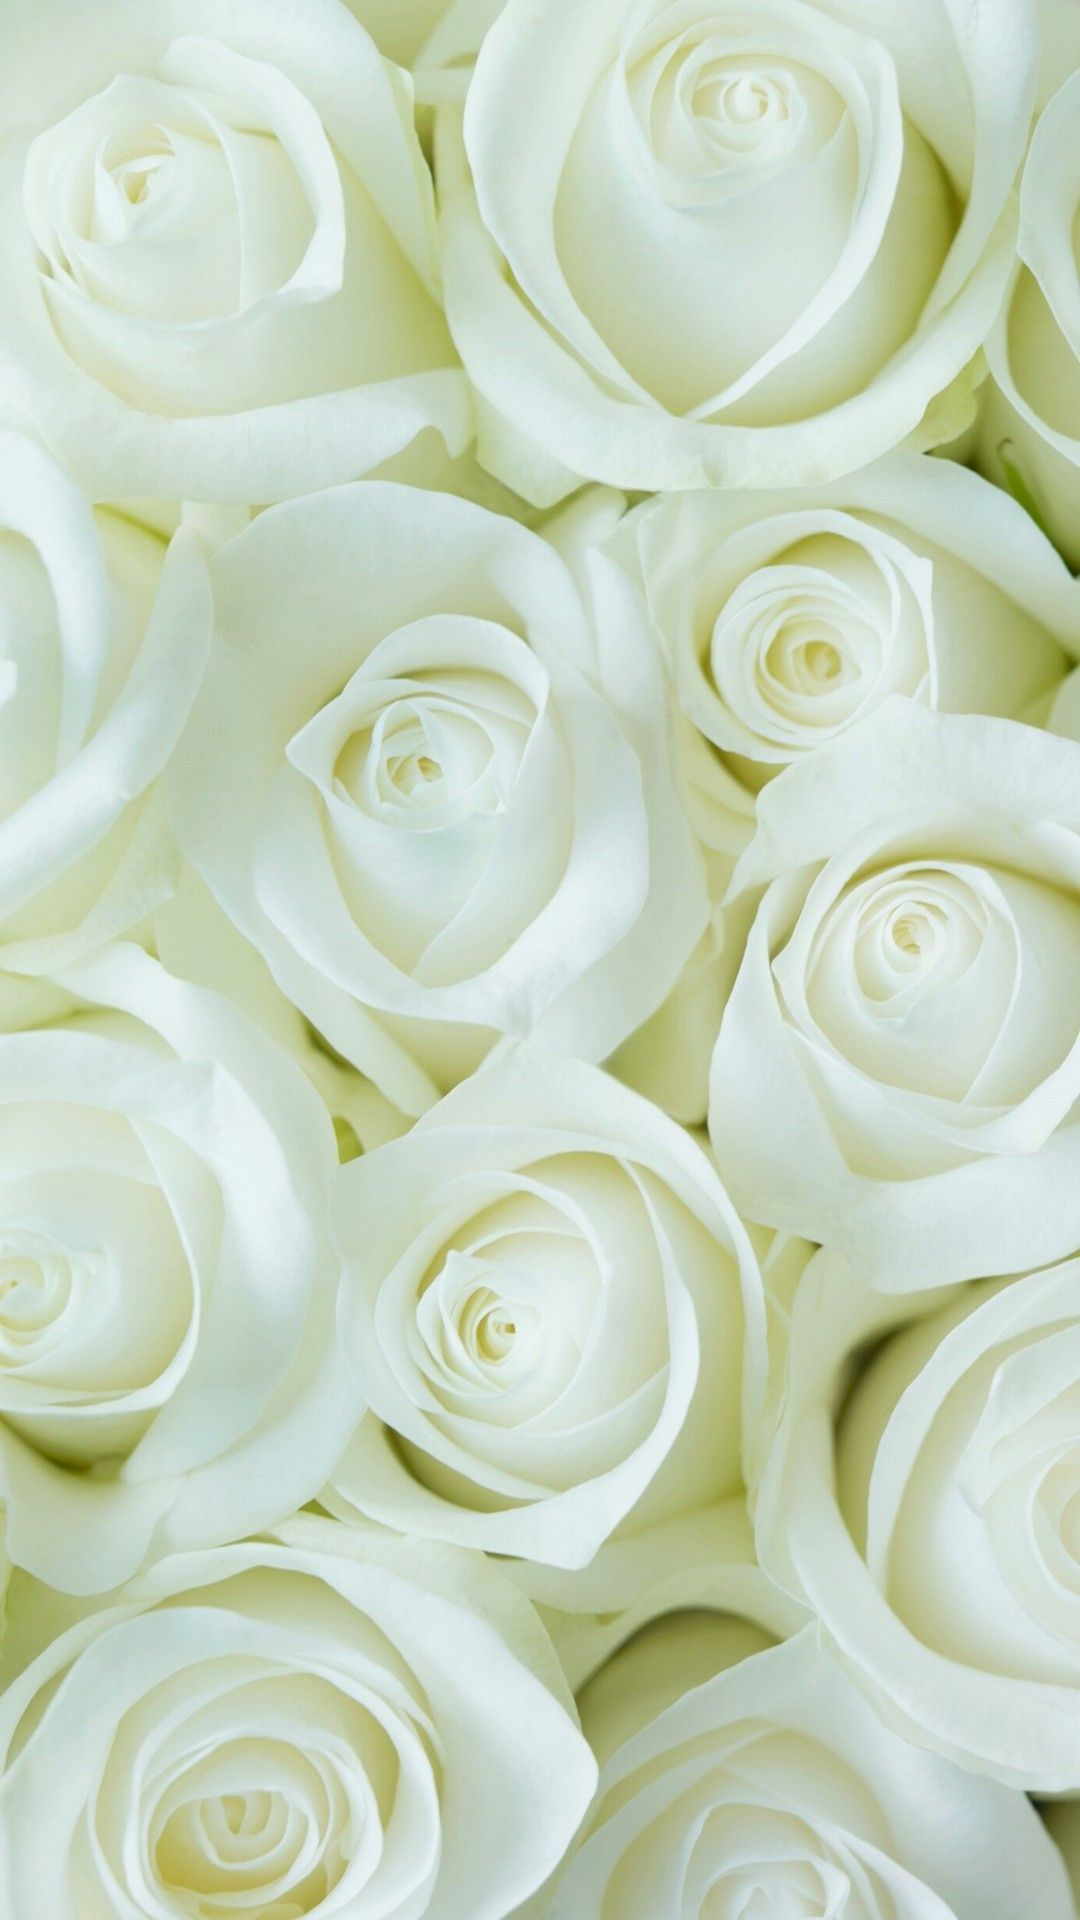 wallpaper flower white rose love